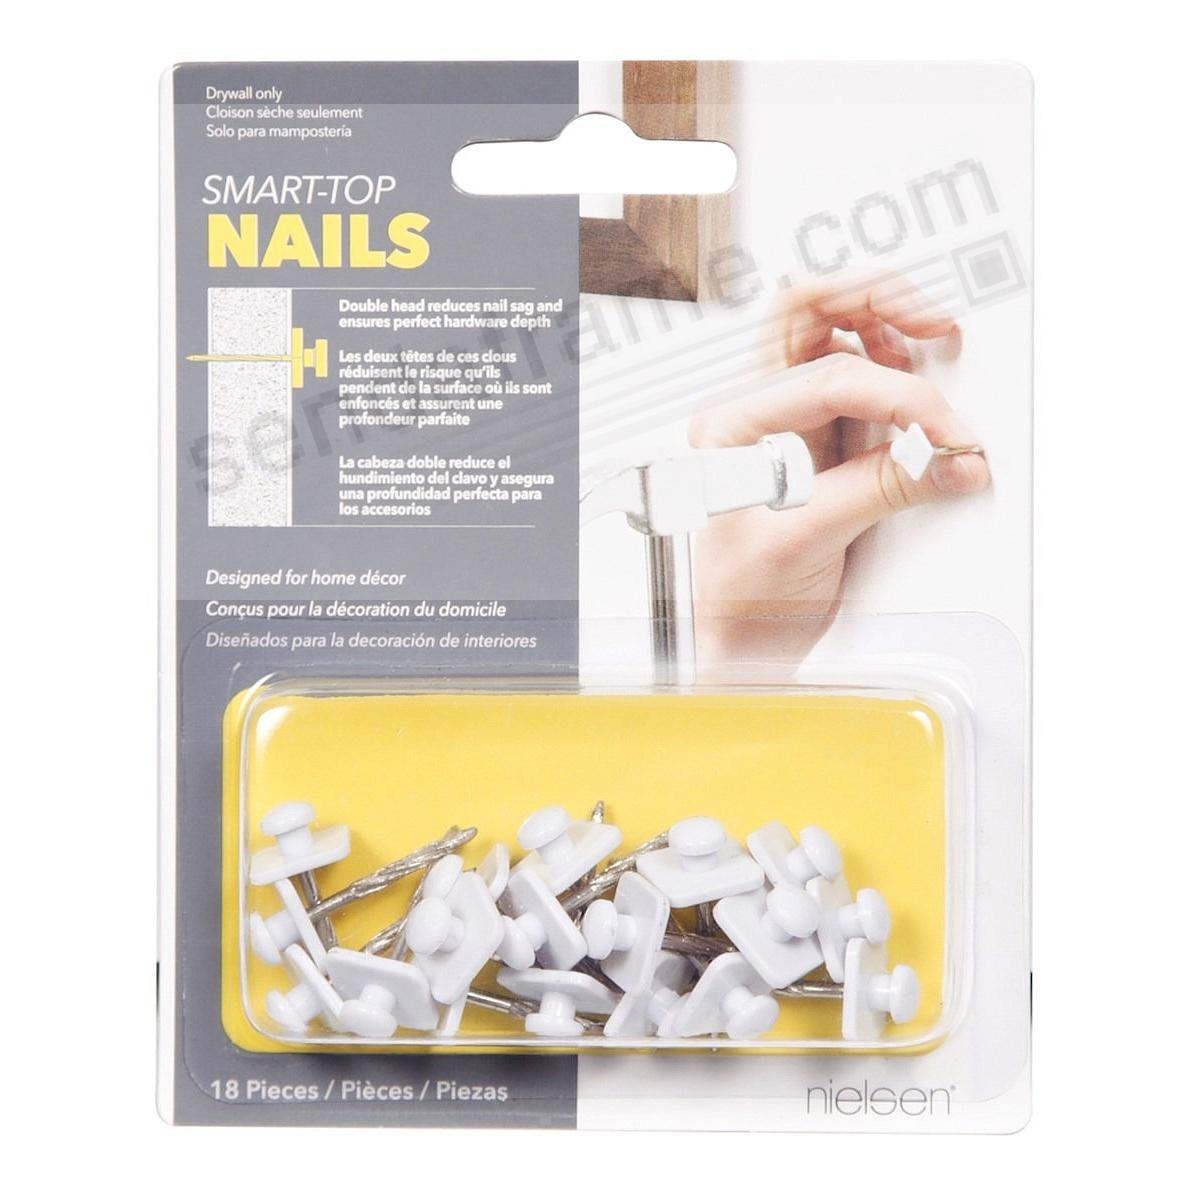 SMART-TOP NAILS by Niesen®